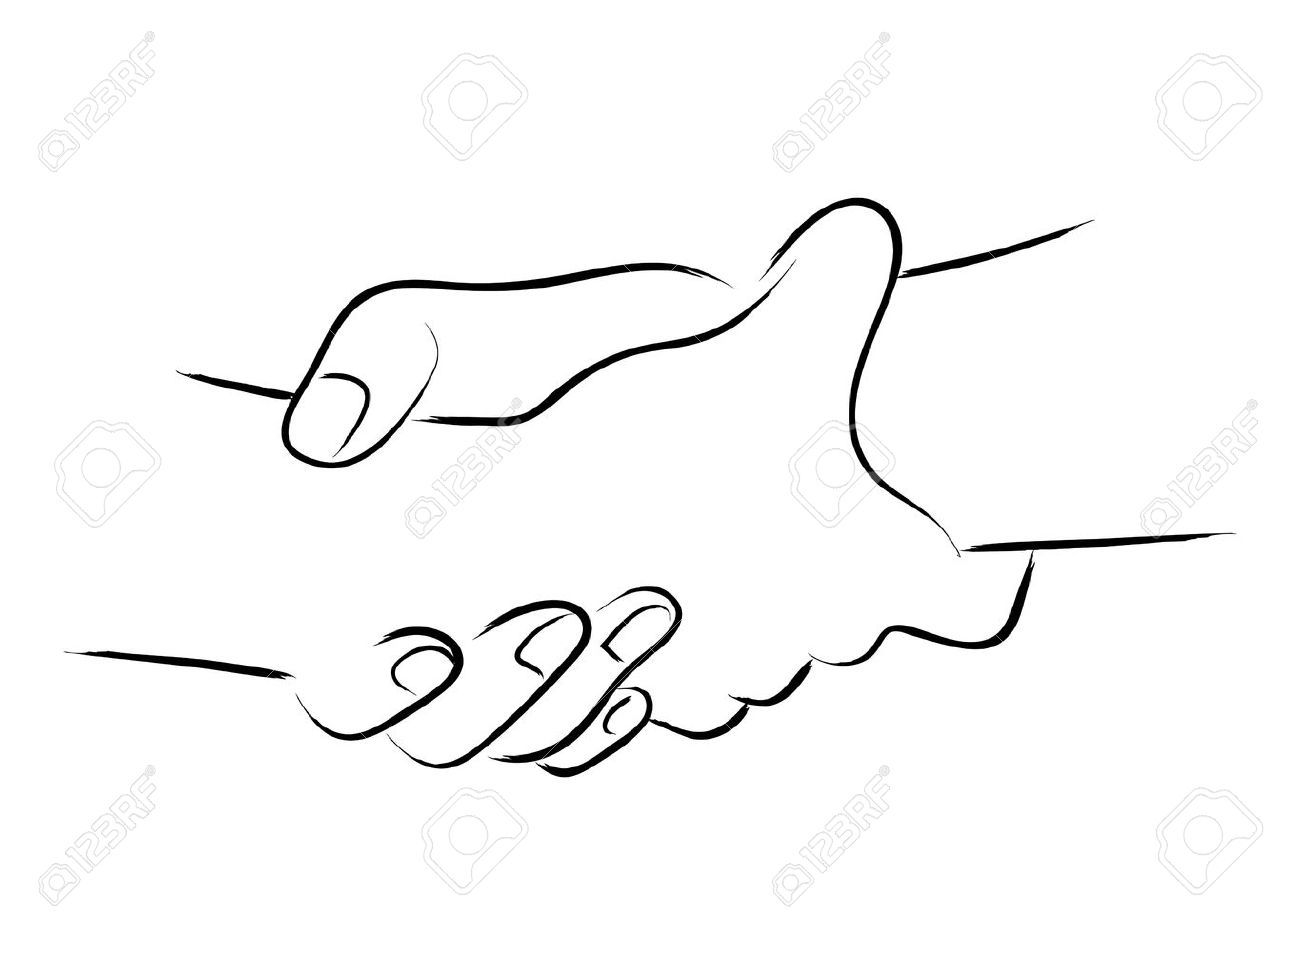 The Centre Of The H In Hmf How To Draw Hands Couple Sketch Holding Hands Drawing Get inspired for two hands holding each